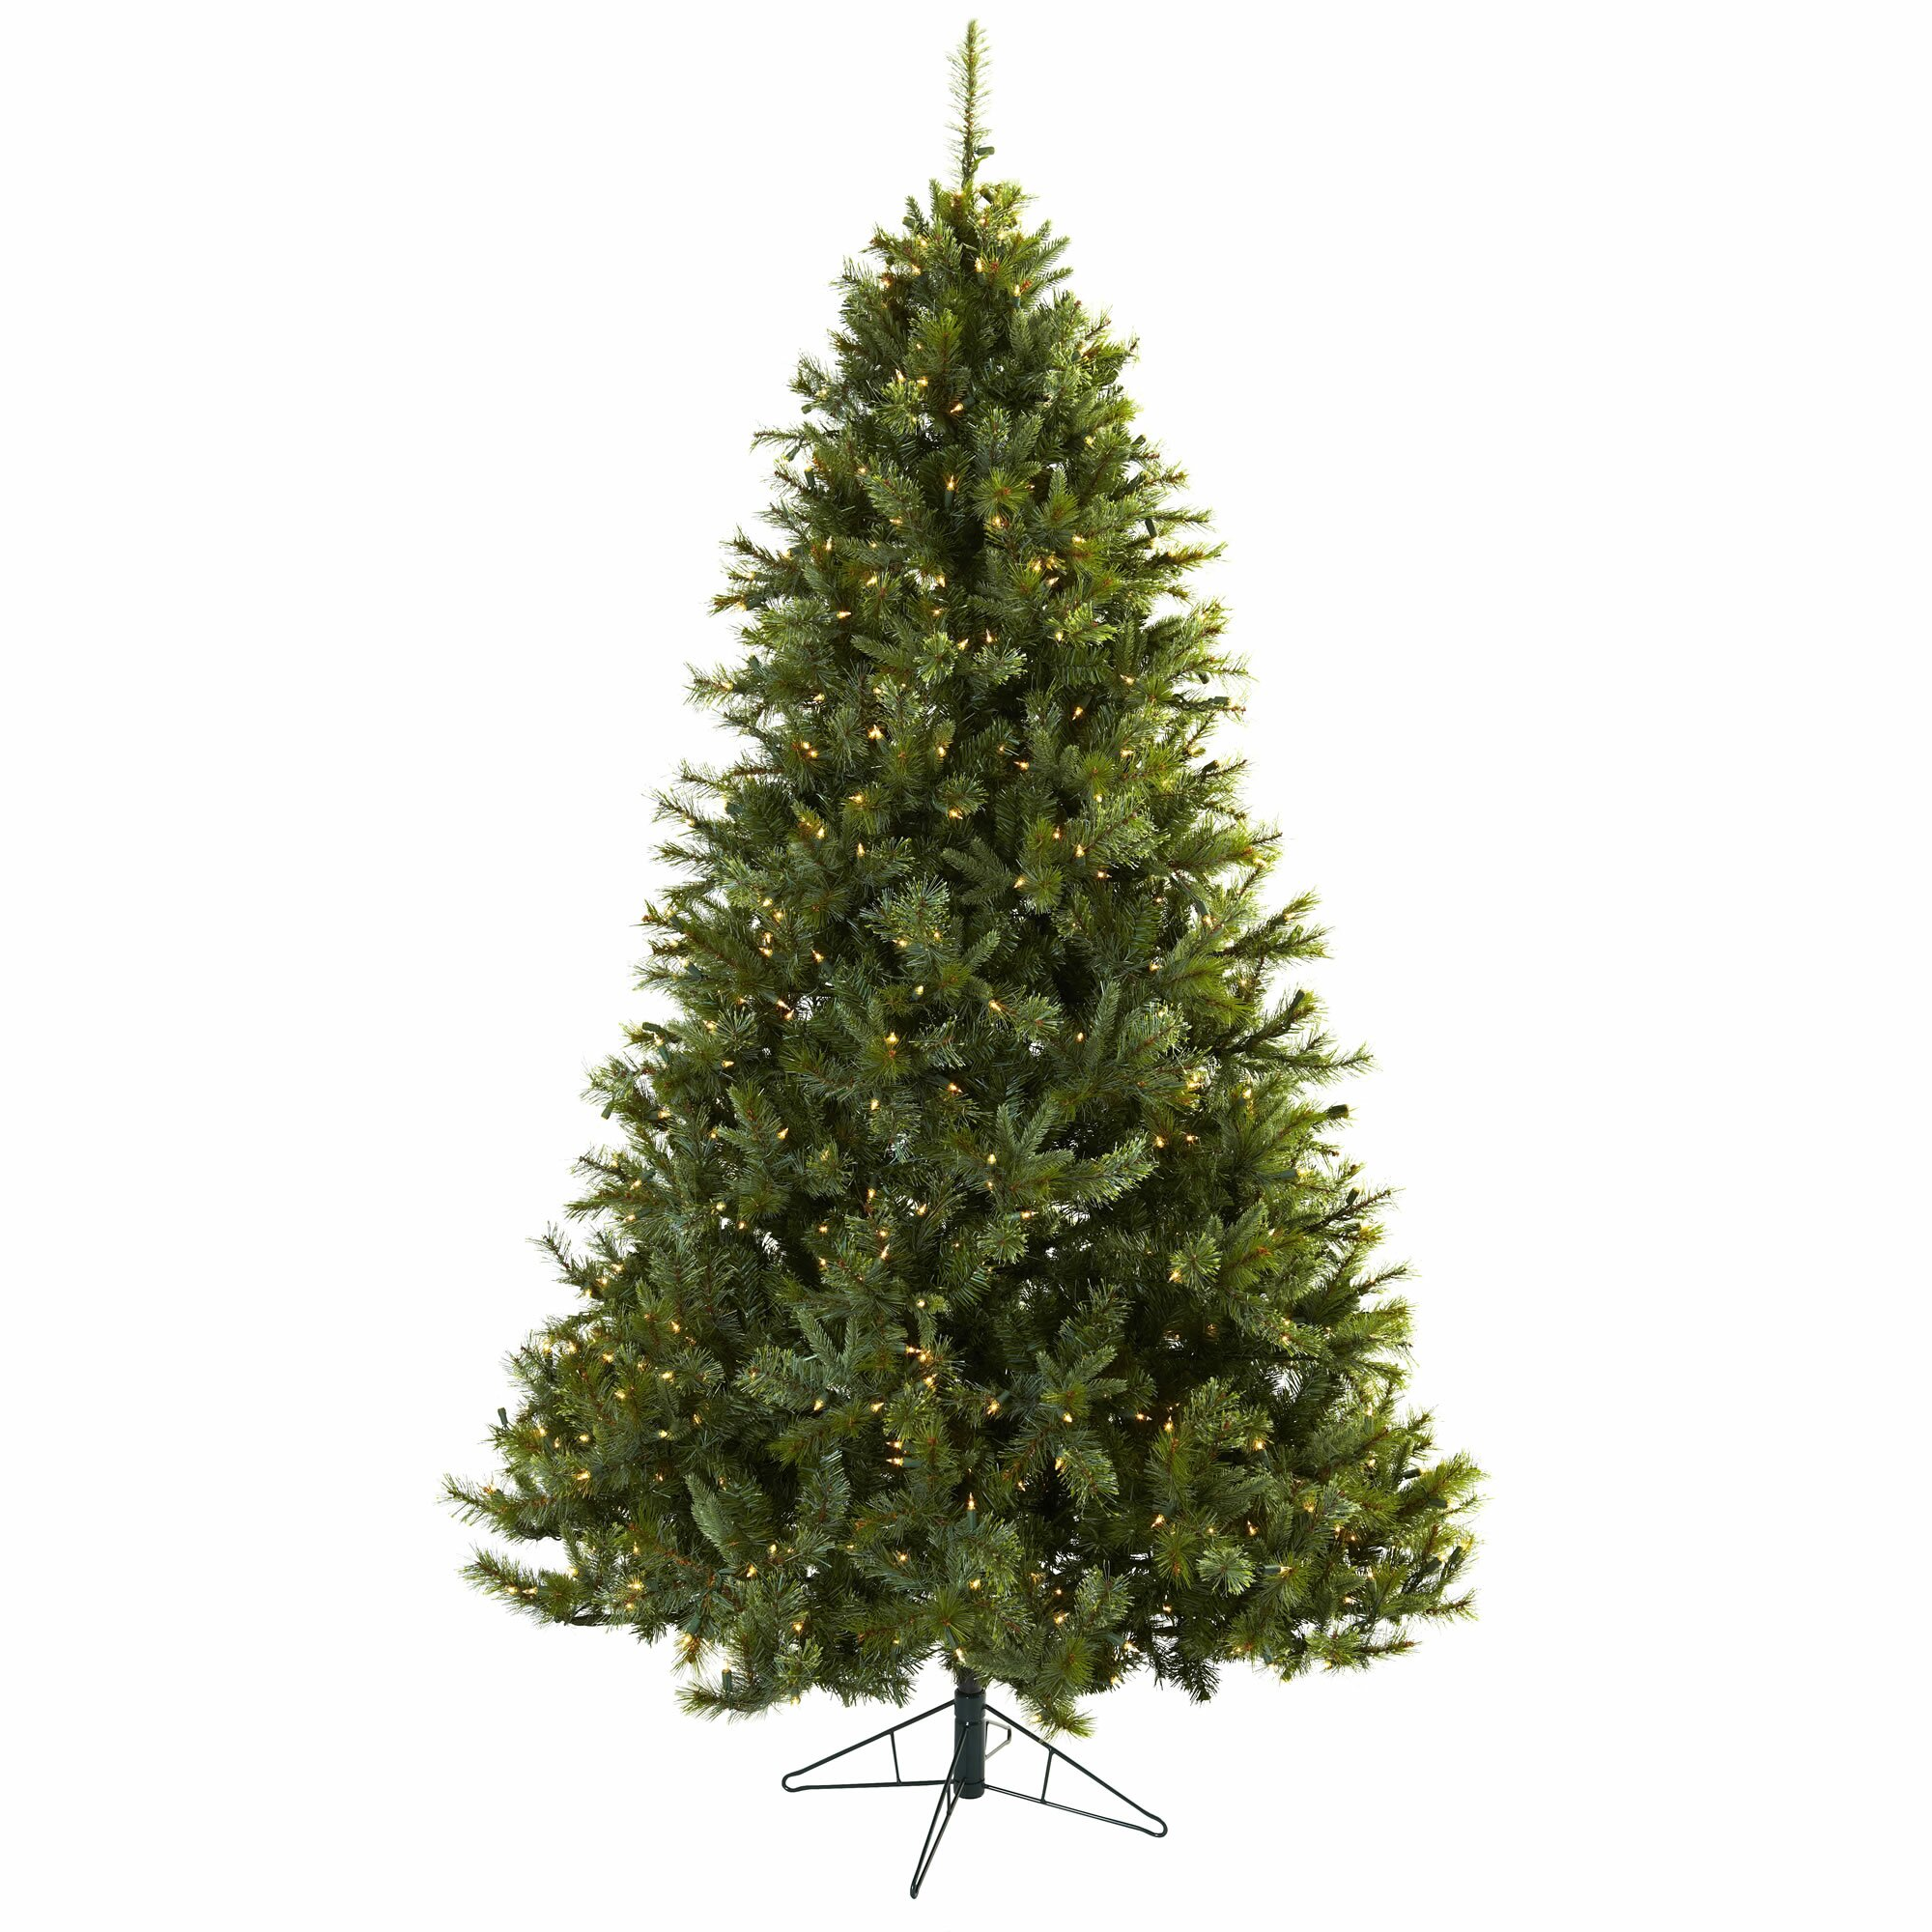 Artificial Christmas Tree Sale Home Depot: Nearly Natural Nearly Natural 7.5' Green Majestic Multi